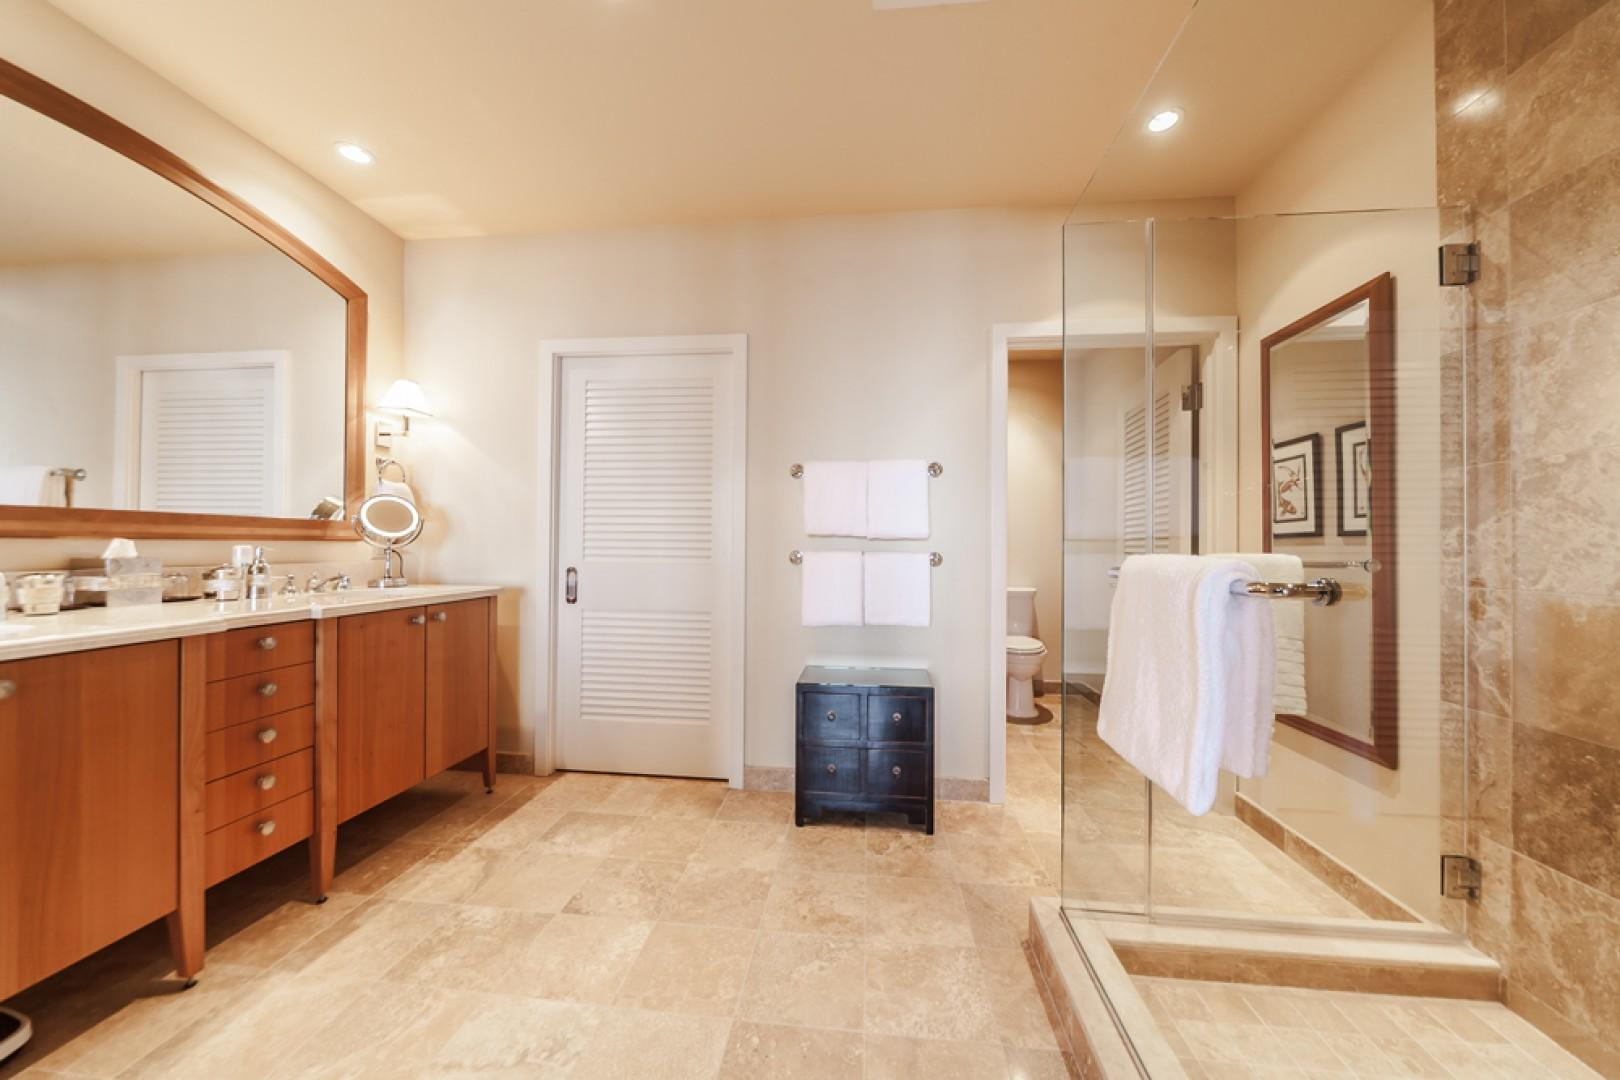 J505 Ocean View Master King Bedroom with Direct Access to the Covered Terrace and an En-Suite Bath with Deep Soaking Tub, Separate Shower, Private WC, Walk-In Closet